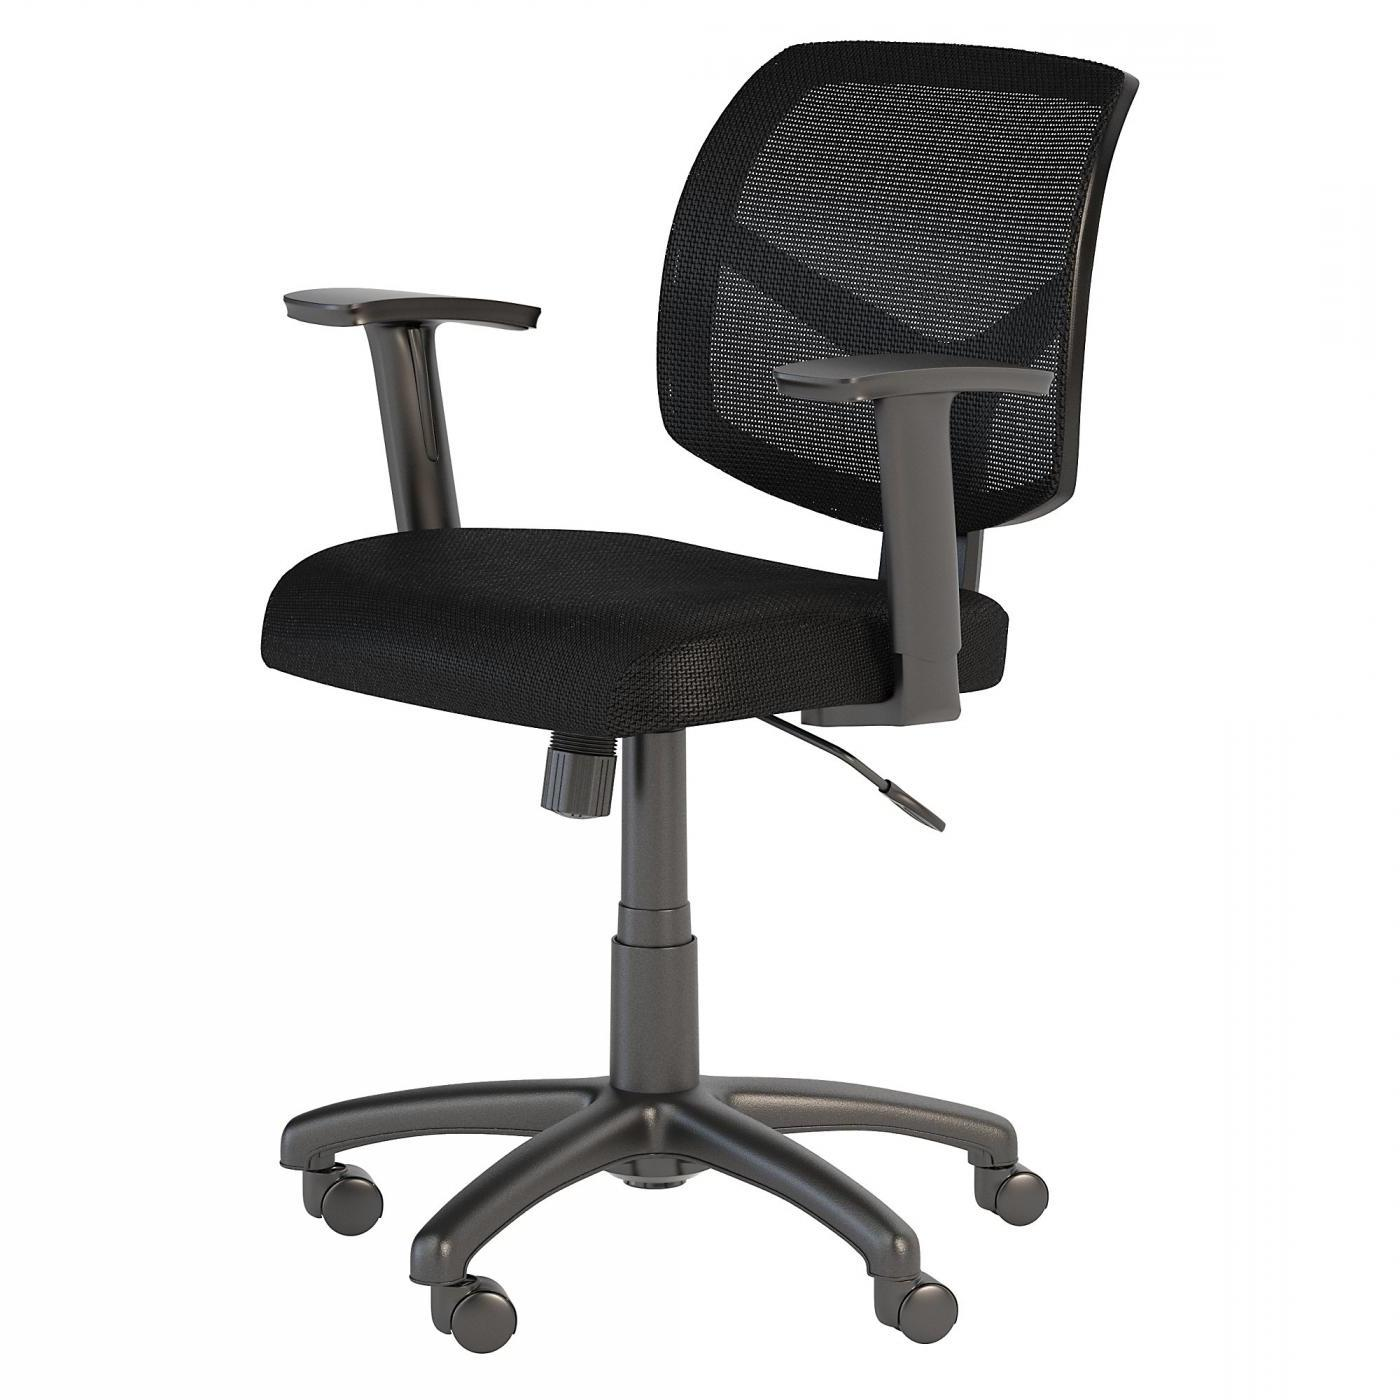 <font color=#c60><b>BUSH BUSINESS FURNITURE PETITE MESH BACK OFFICE CHAIR. FREE SHIPPING</font></b> </font></b></font></b>